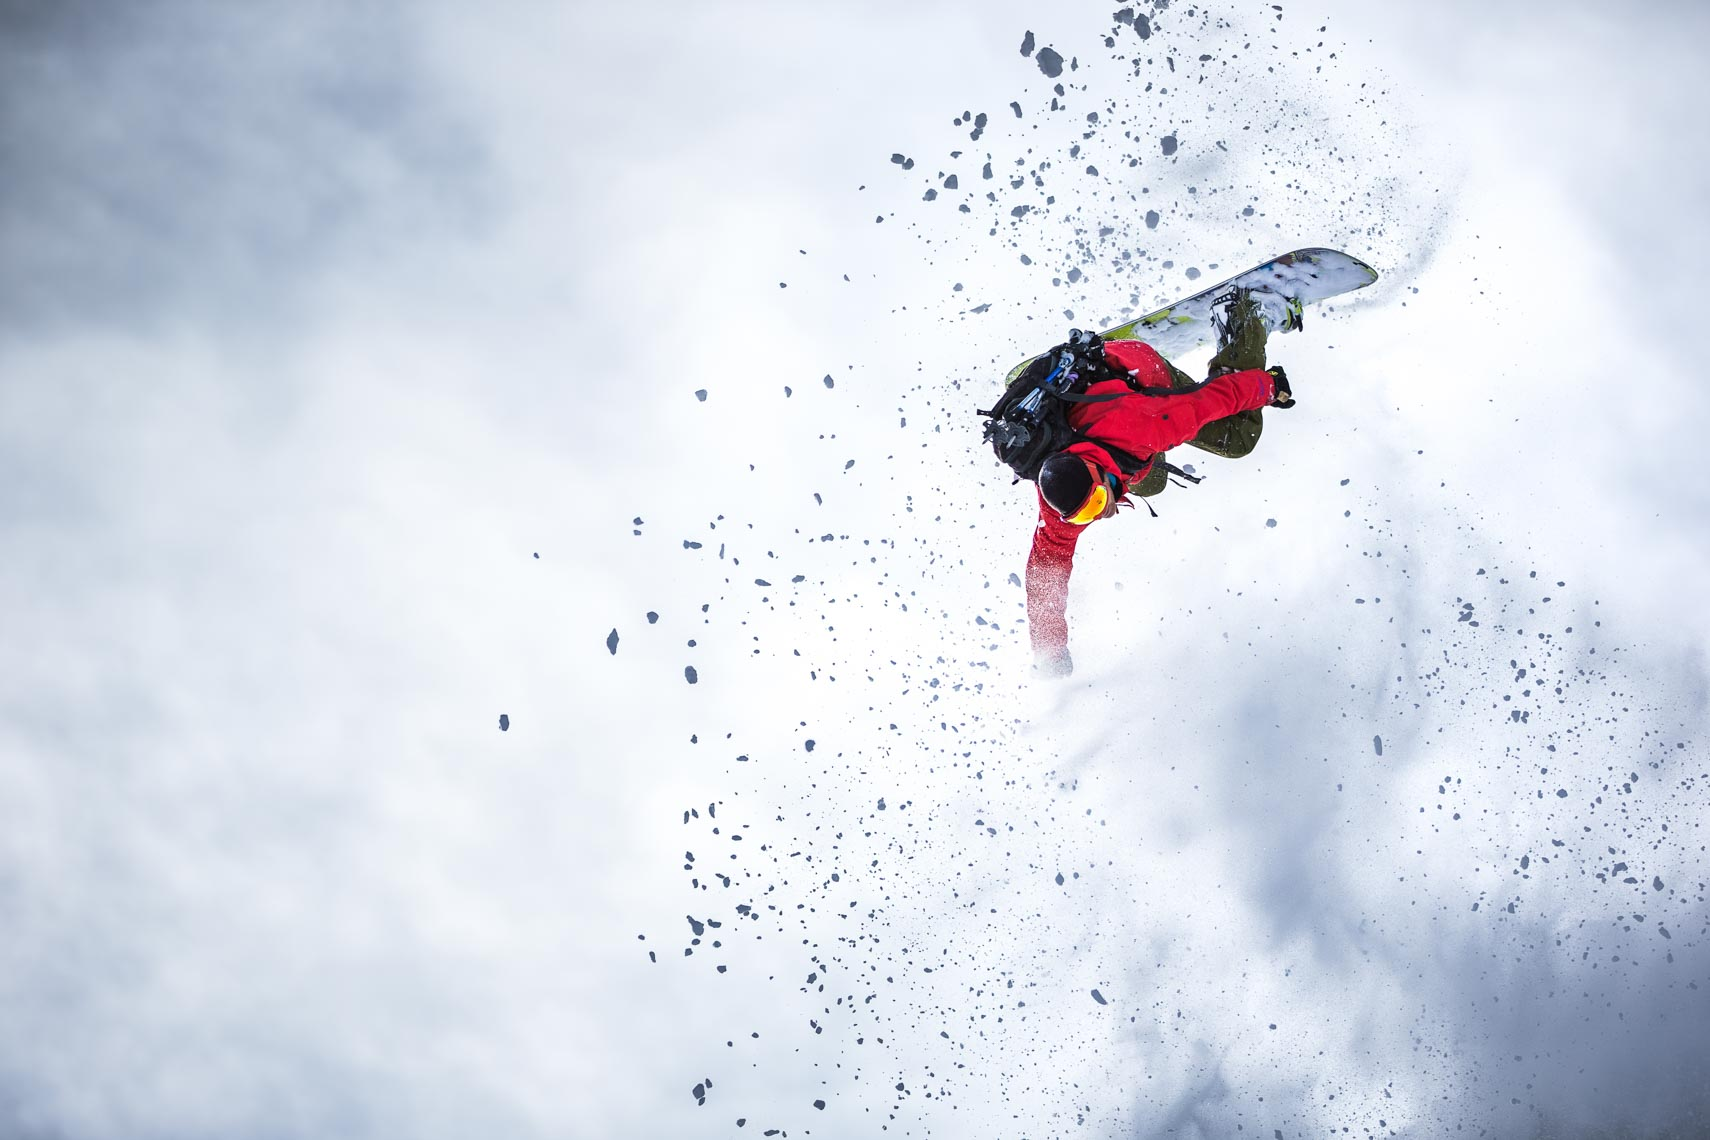 Snowboard backflip photographed by whistler ski photographer